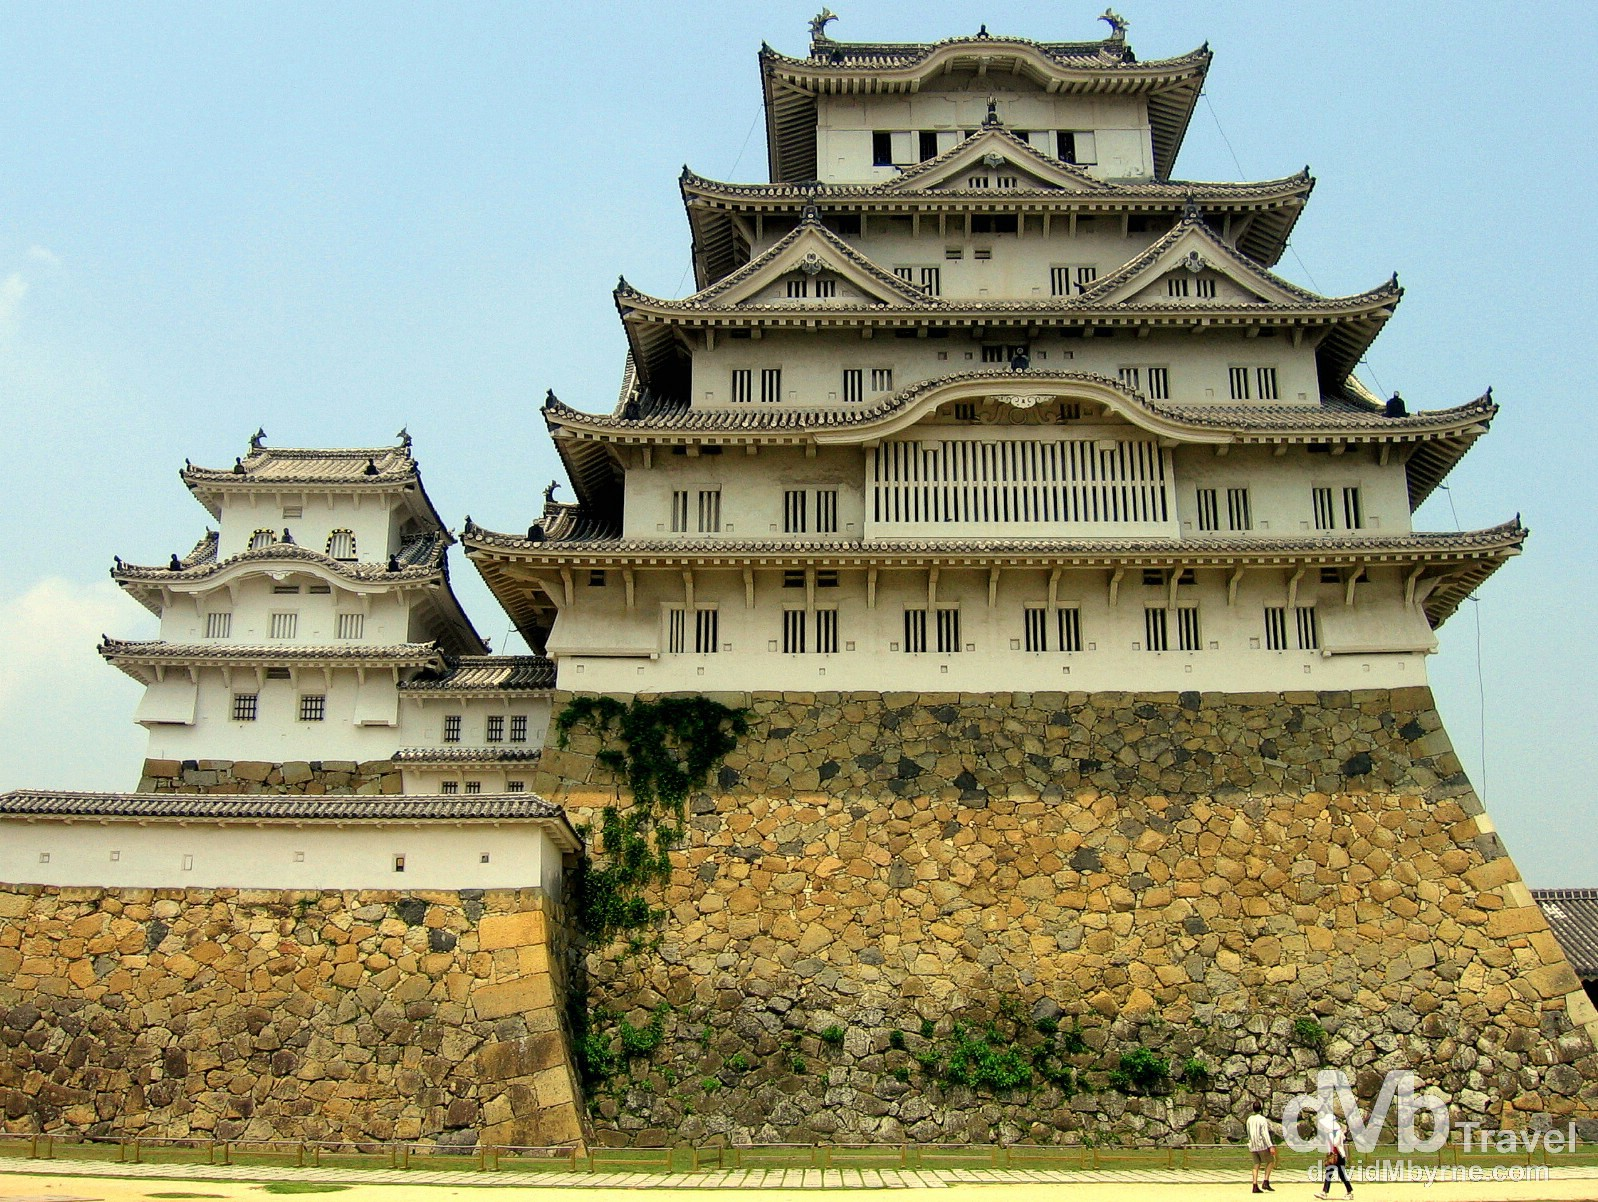 Fronting the massive UNESCO-listed Himeji Castle in Himeji, Honshu, Japan. July 21st, 2005.